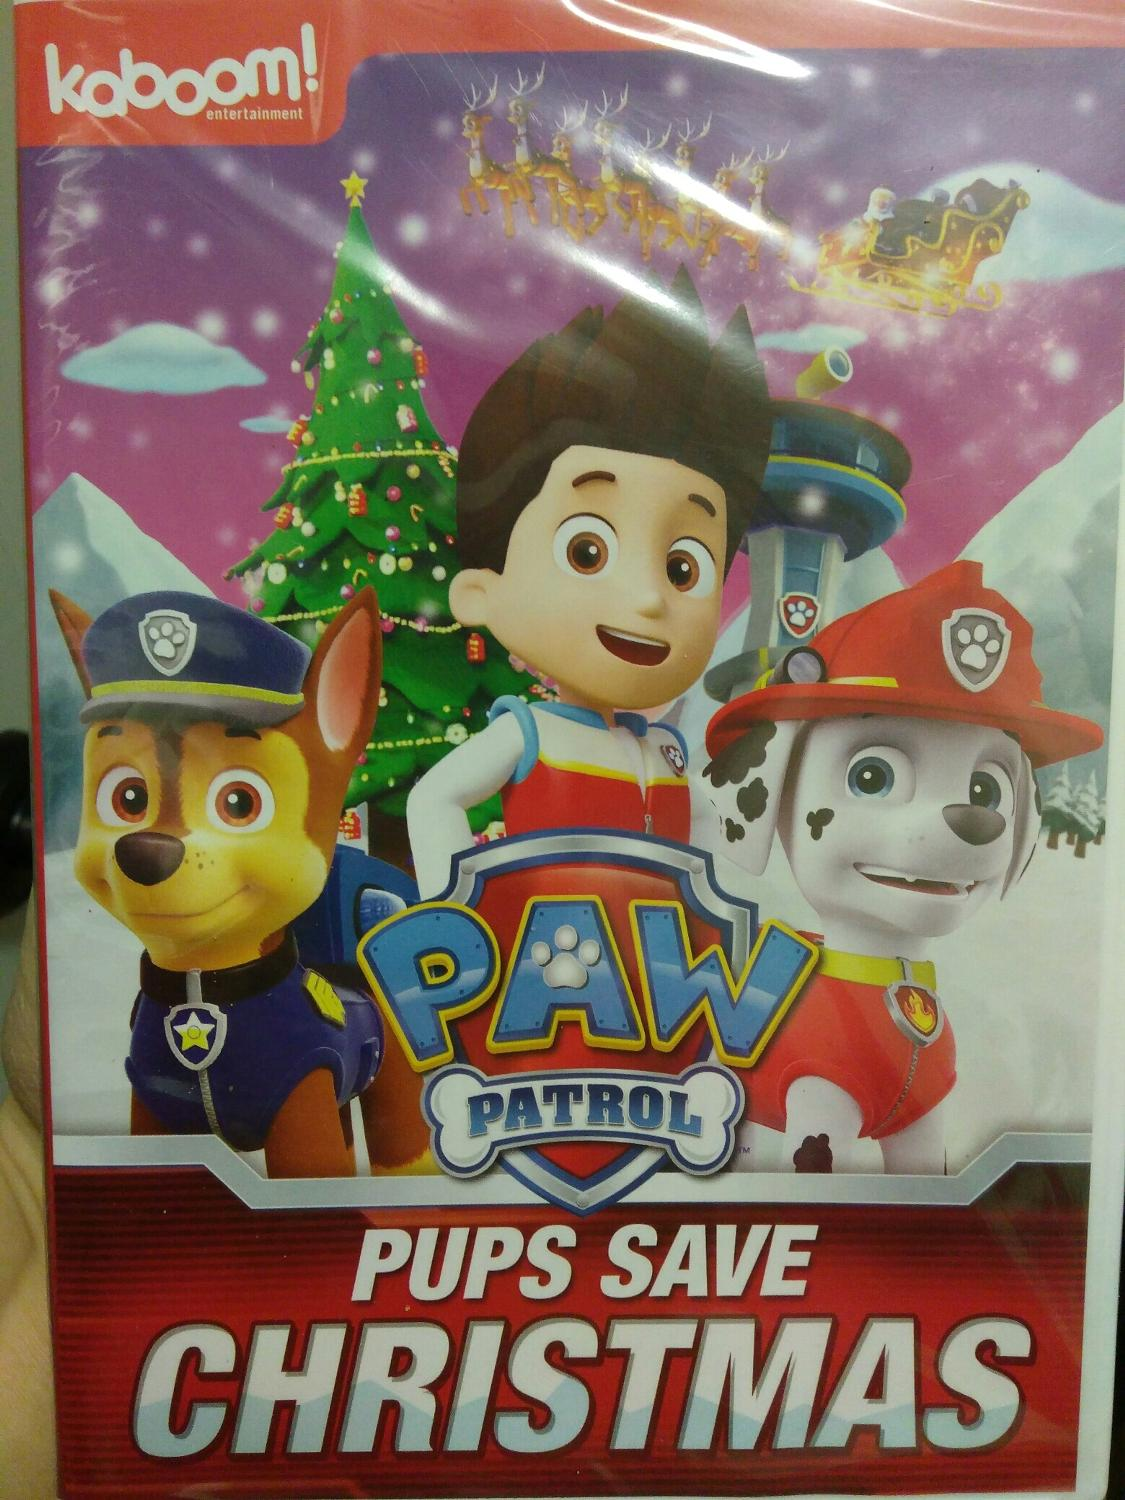 Pups Save Christmas.New In Wrapper Paw Patrol Pups Save Christmas Dvd